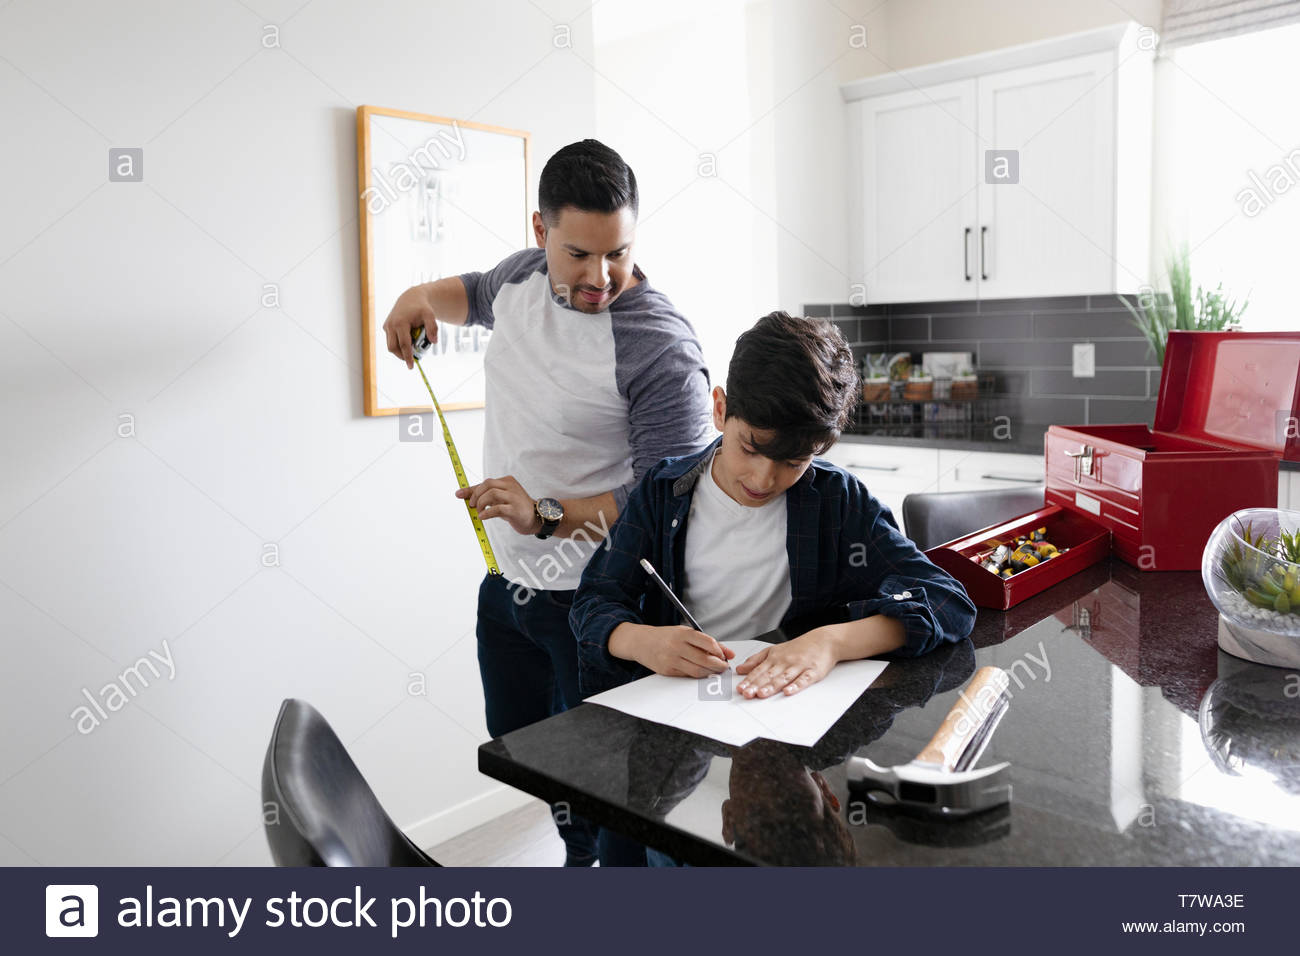 Father and son hanging picture frame in kitchen - Stock Image